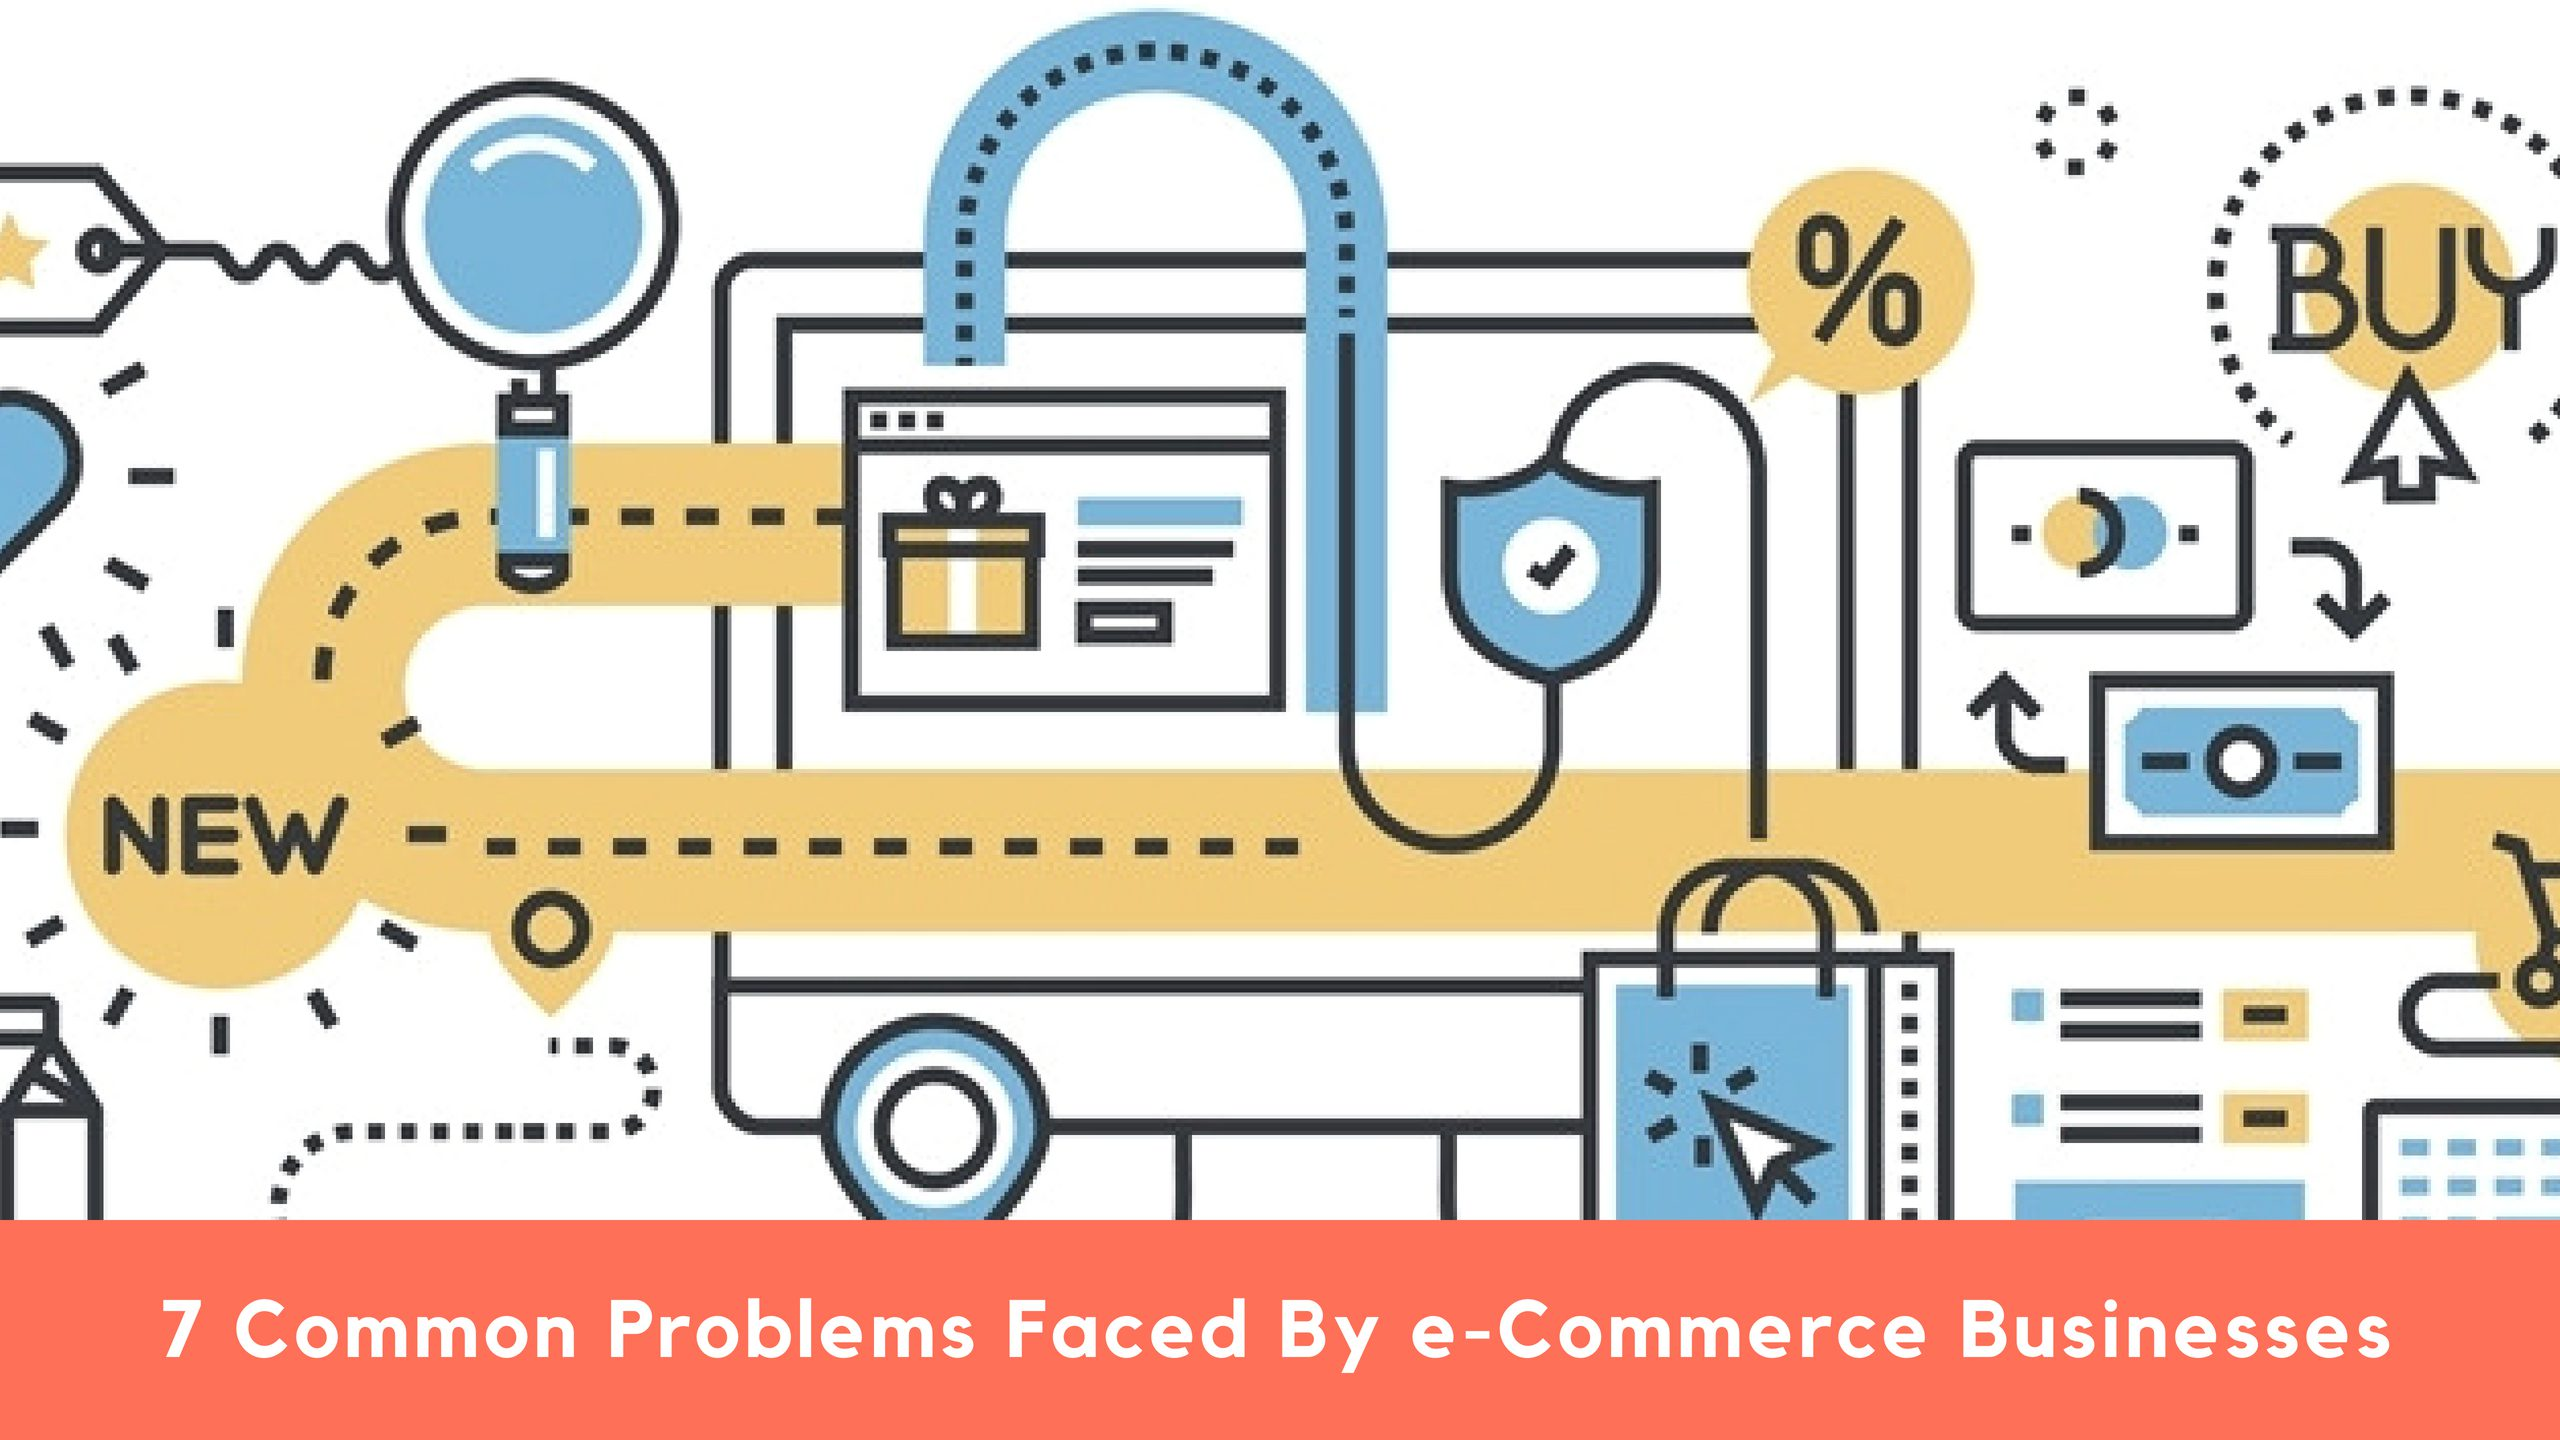 7 Common Problems Faced By e-Commerce Businesses